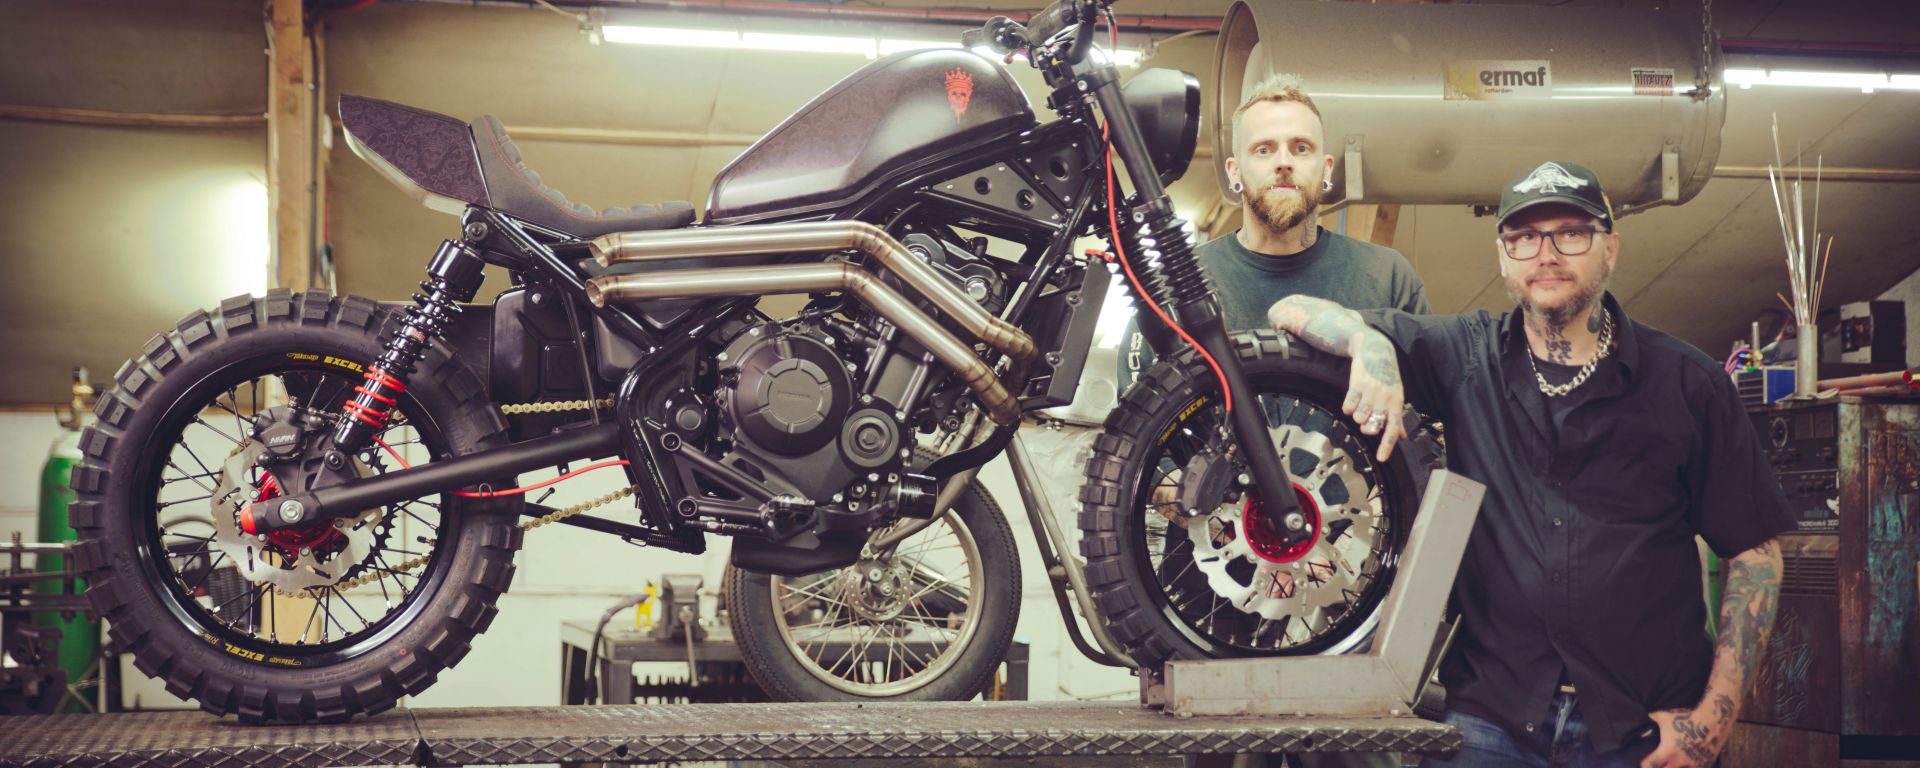 Honda CMX500 Rebel Special al The Bike Shed 2017